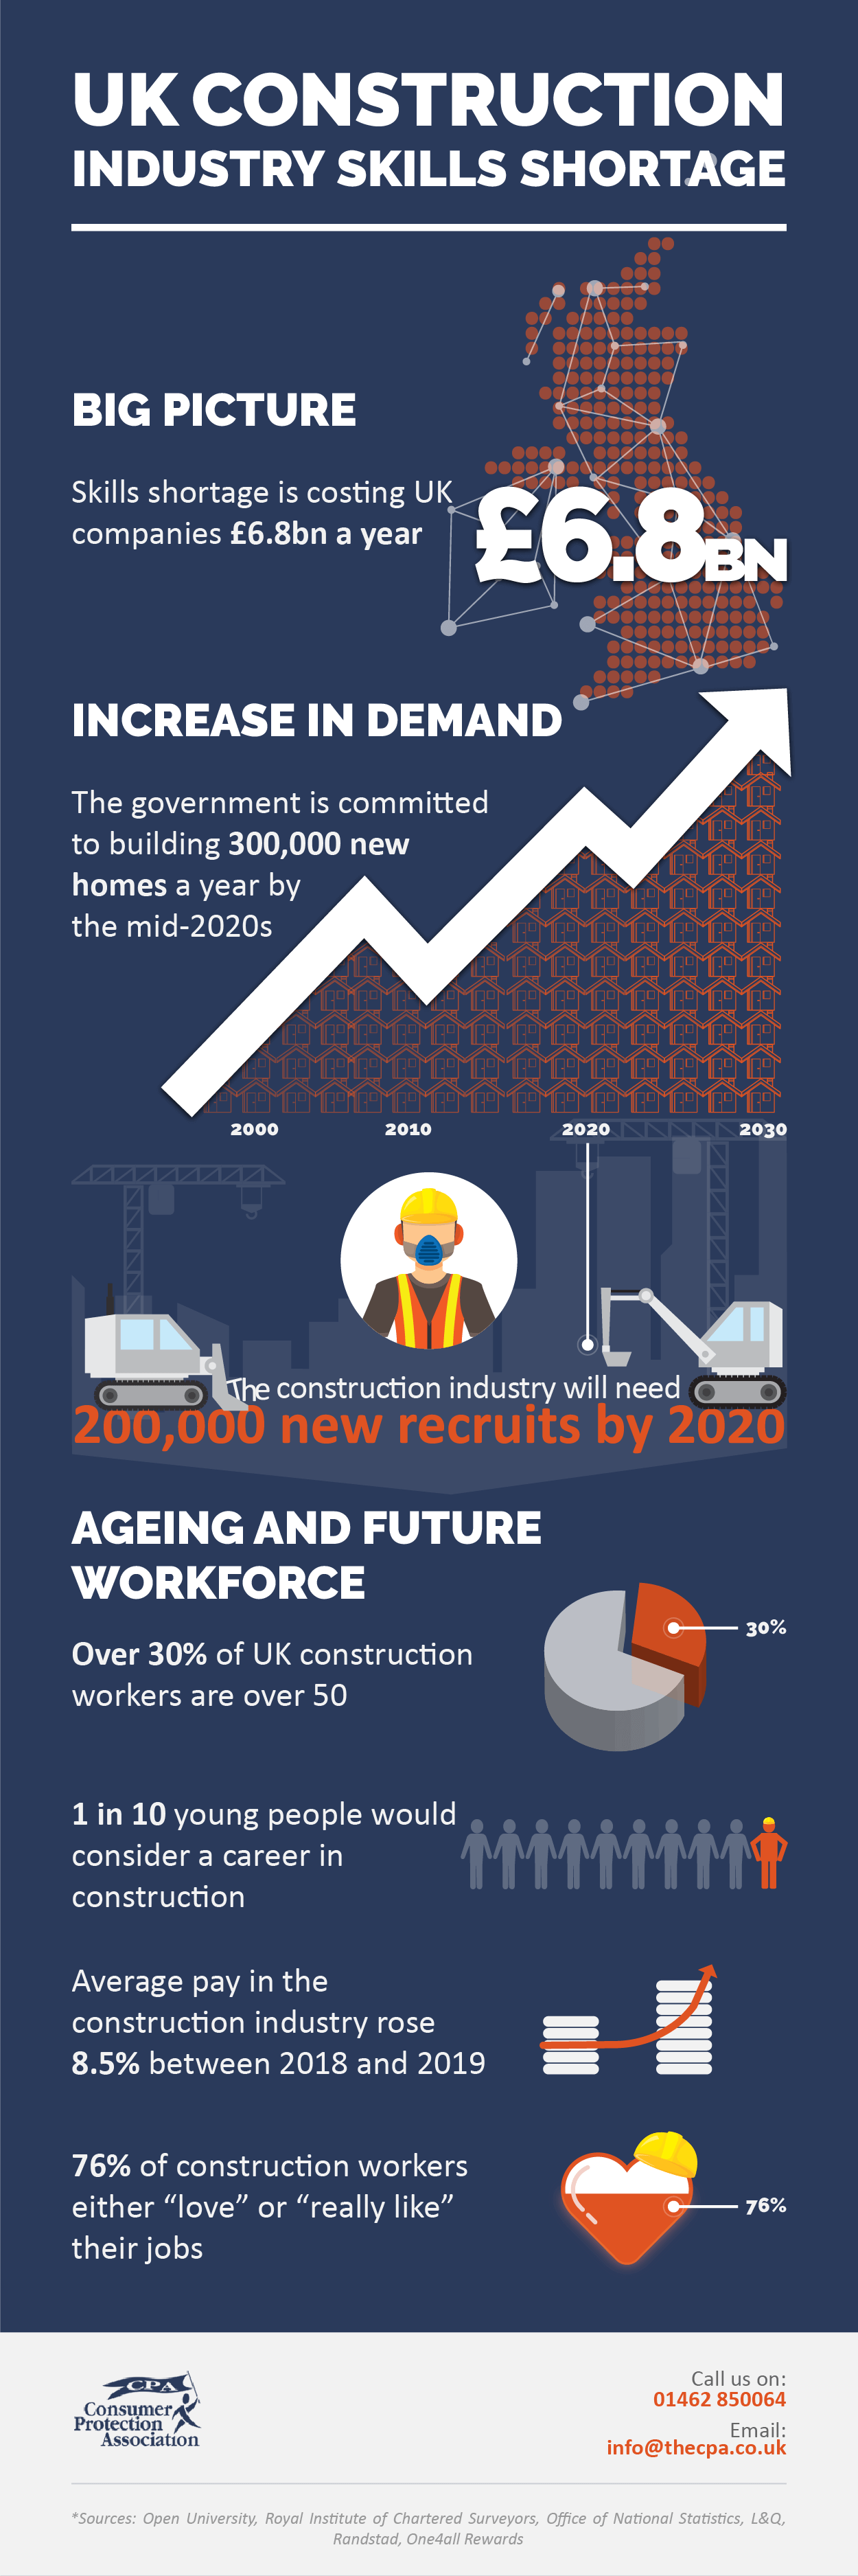 UK Construction skills shortage infographic